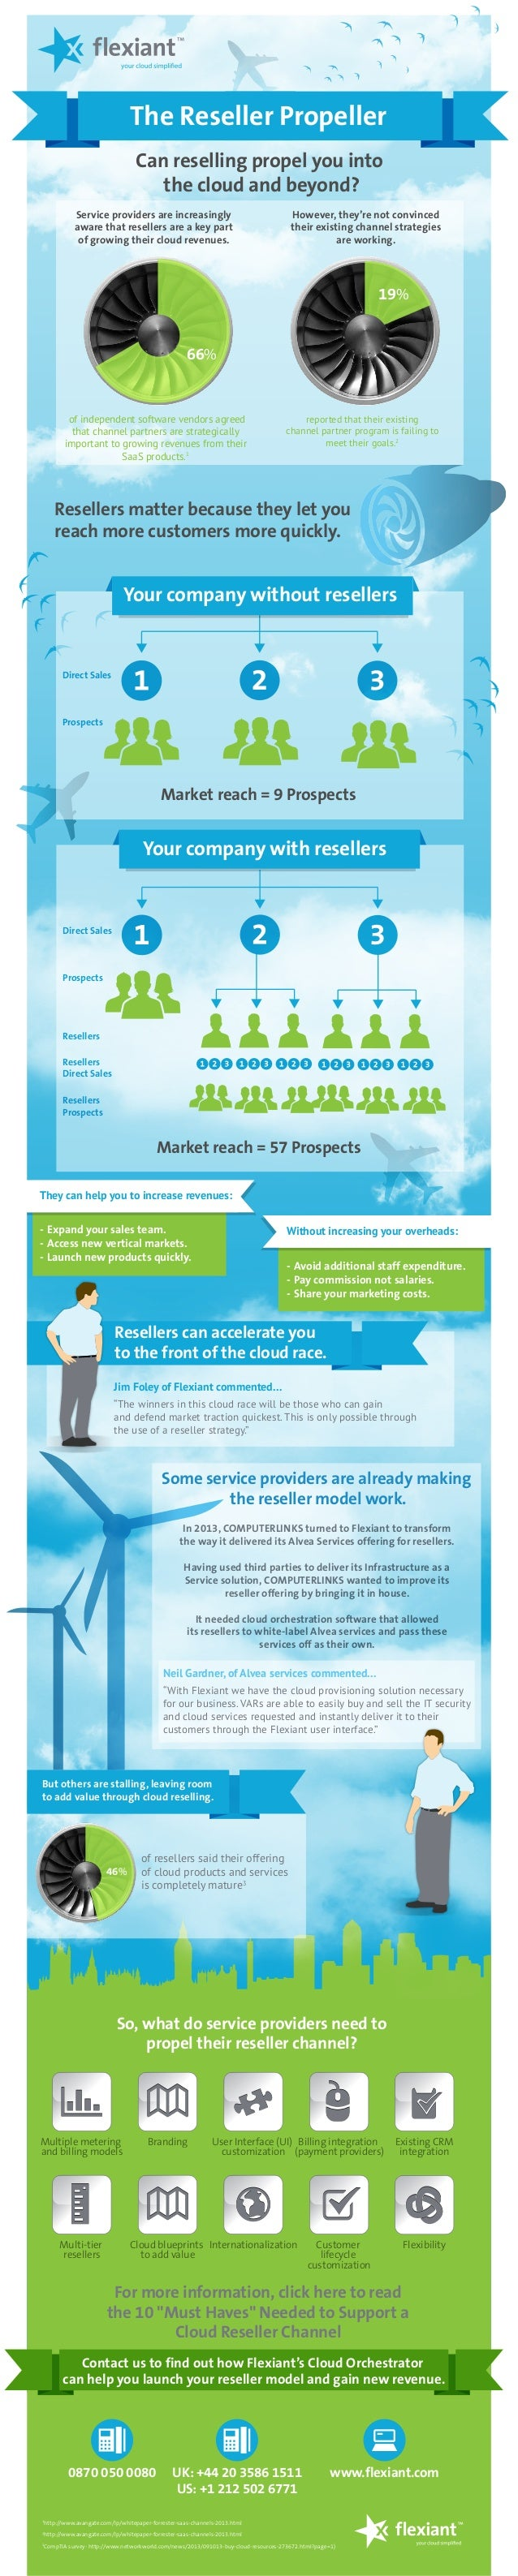 The Reseller Propeller Can reselling propel you into the cloud and beyond? Service providers are increasingly aware that r...